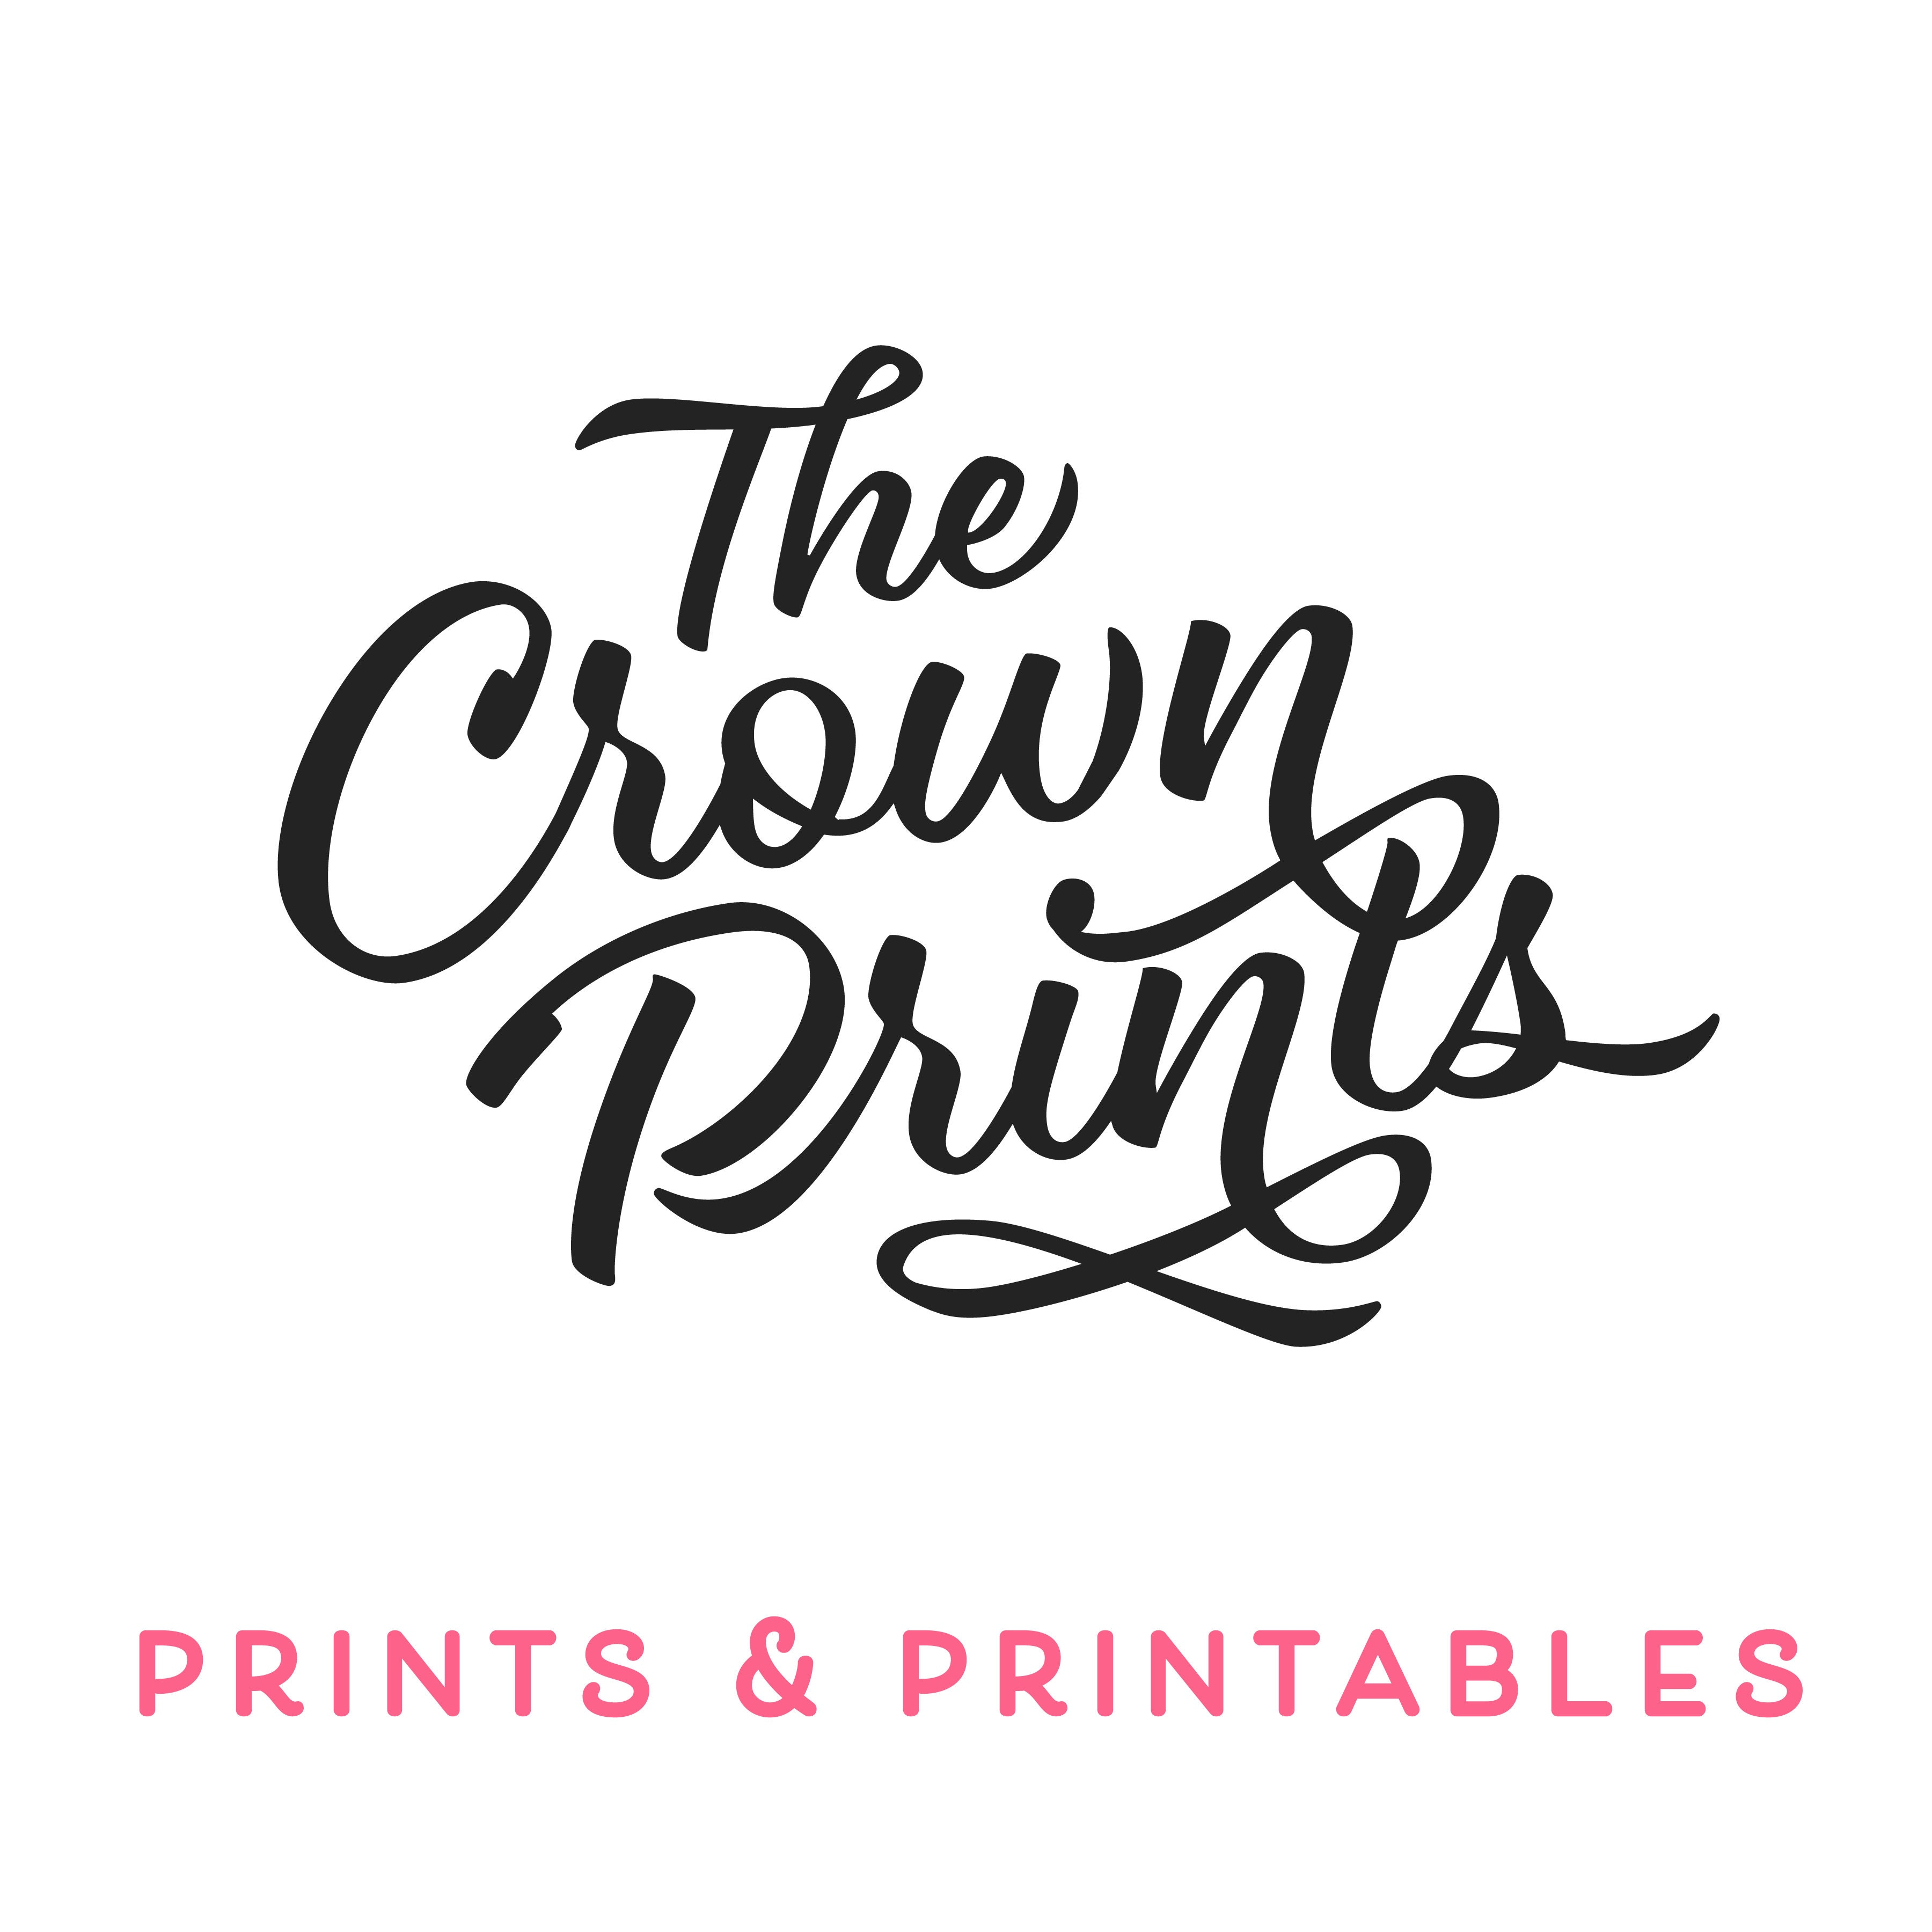 TheCrownPrints